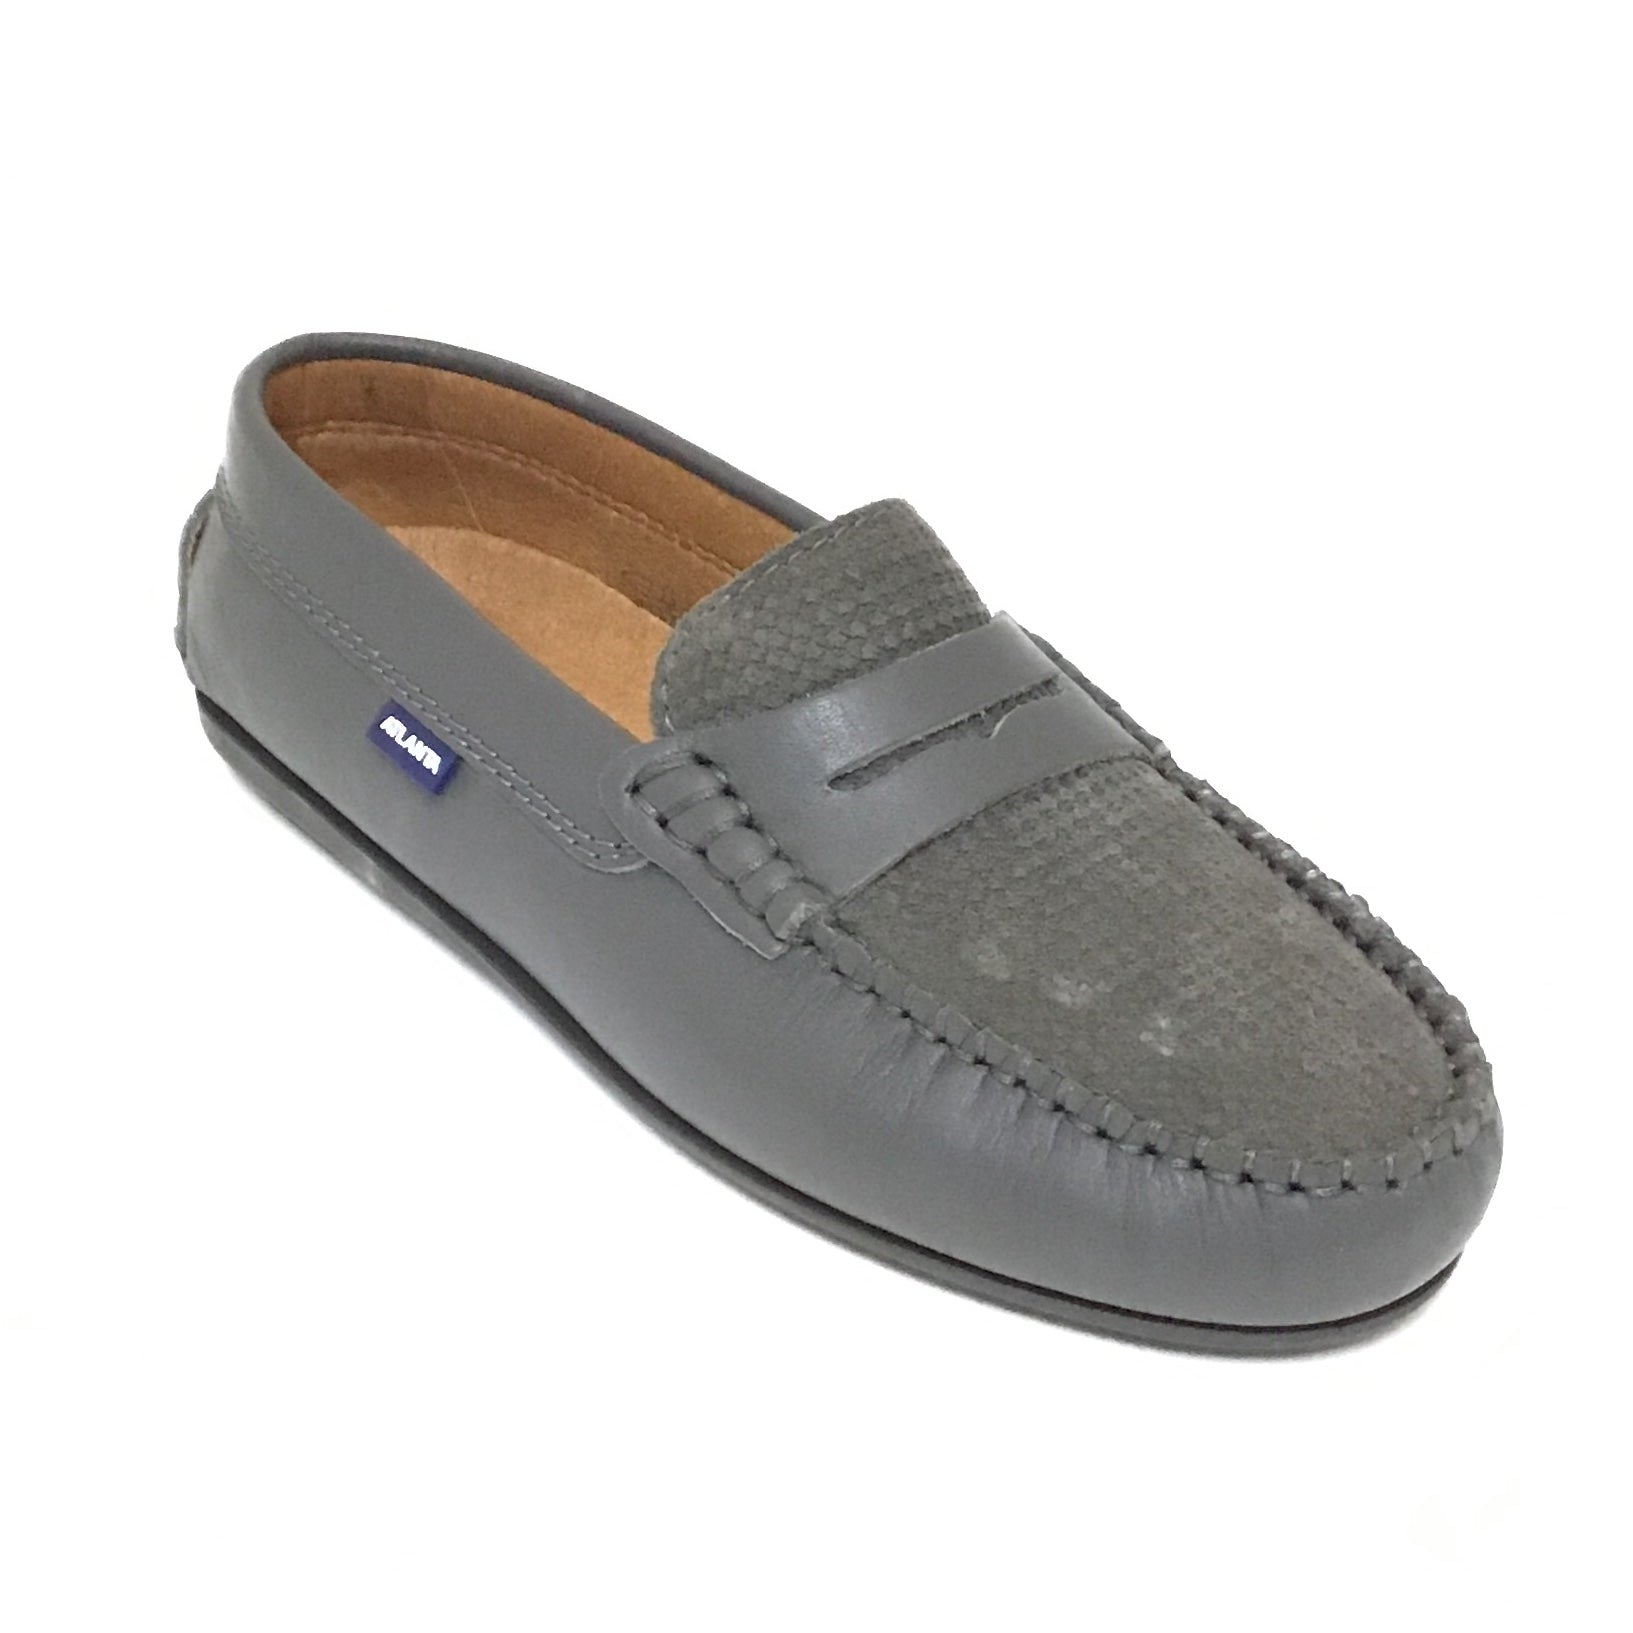 Atlanta Mocassin Gray Penny Loafer